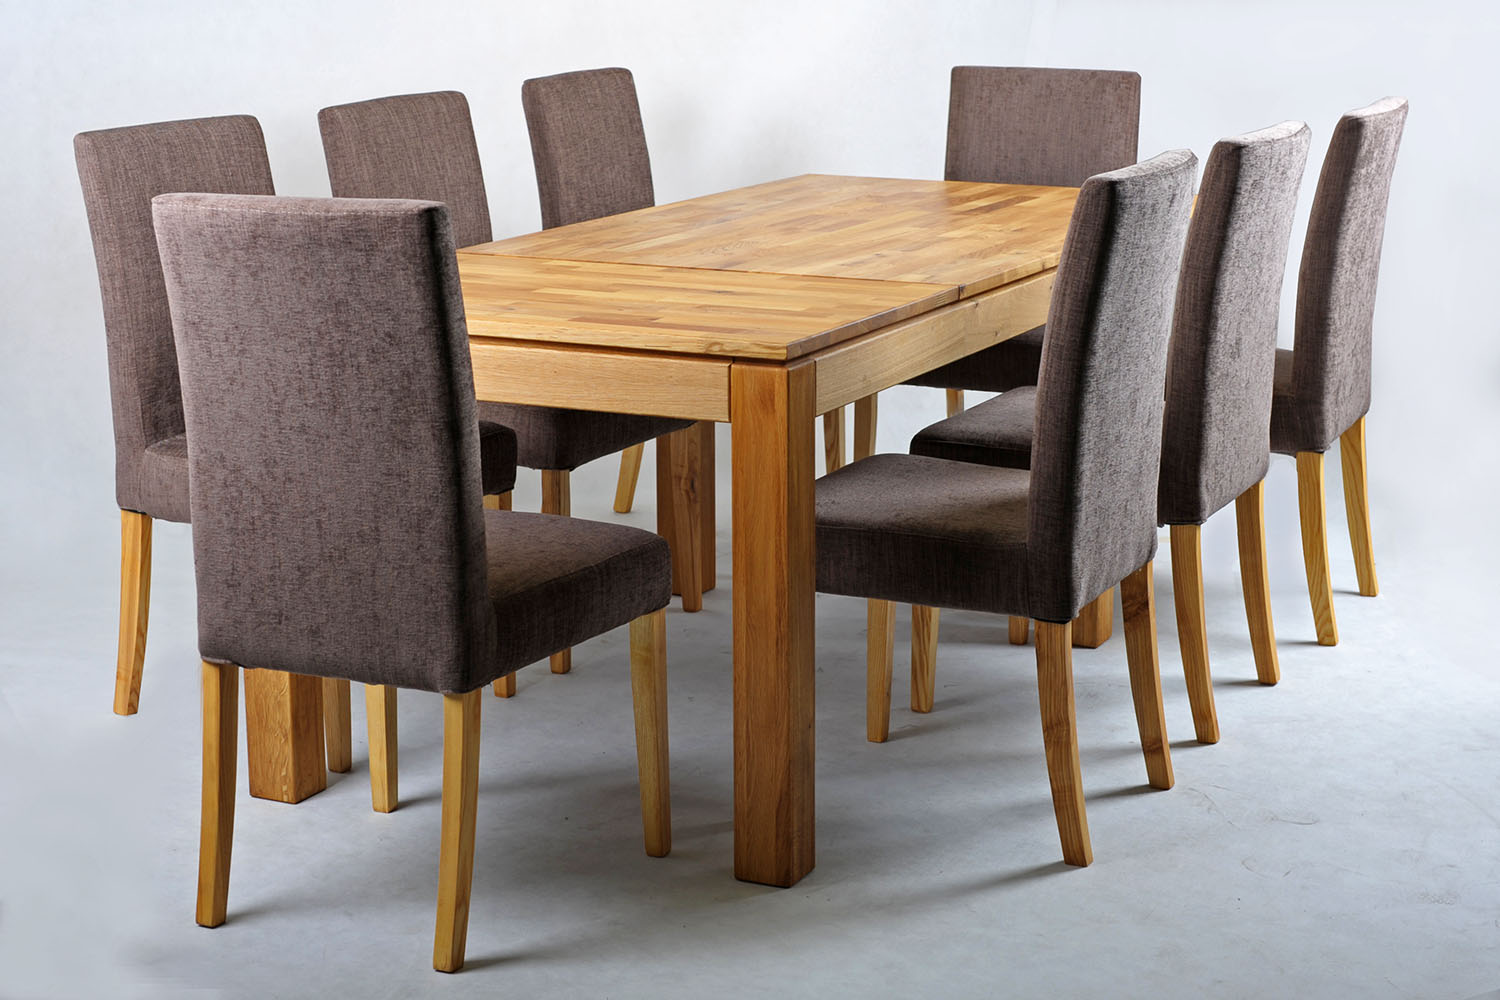 Dining Room Table With 10 Chairs 10 Seater Dining Room Table And Chairs Modern Kitchen Furniture